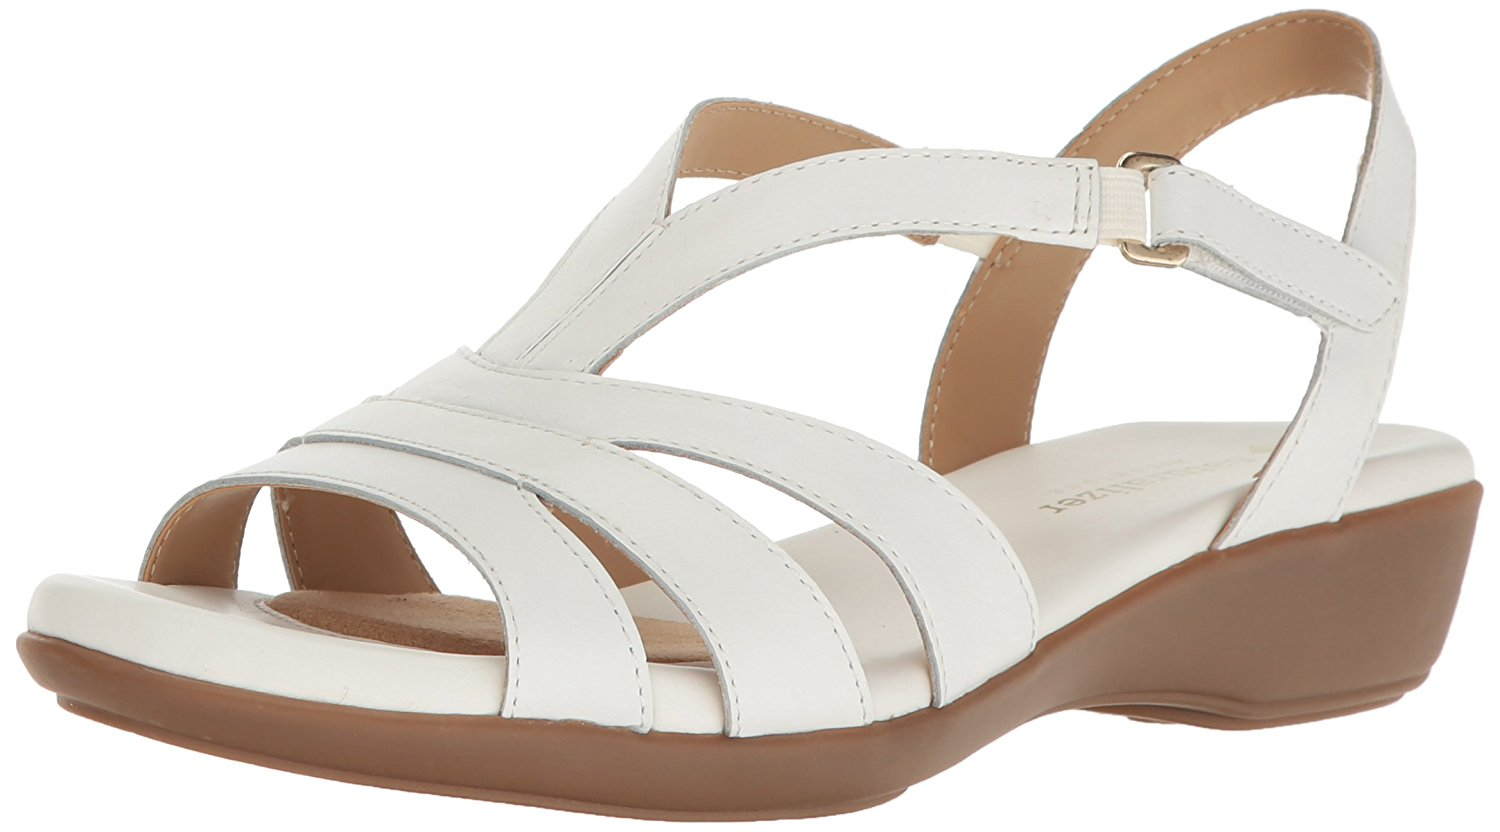 Naturalizer Womens Neina Leather Open Toe Casual Ankle Strap Sandals by Naturalizer